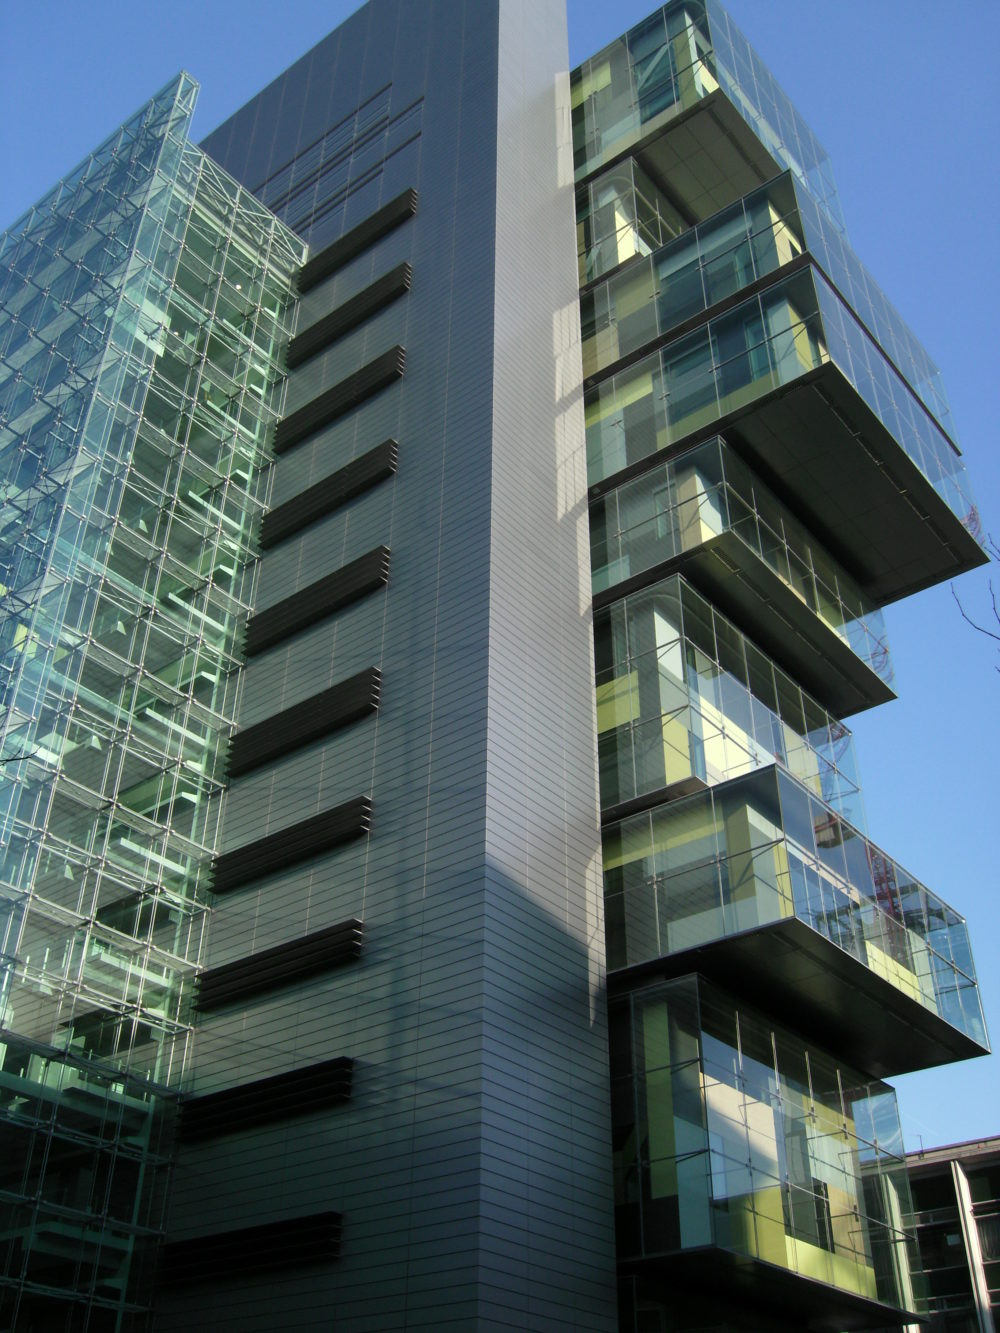 Exterior of the Manchester Civil Justice Centre.